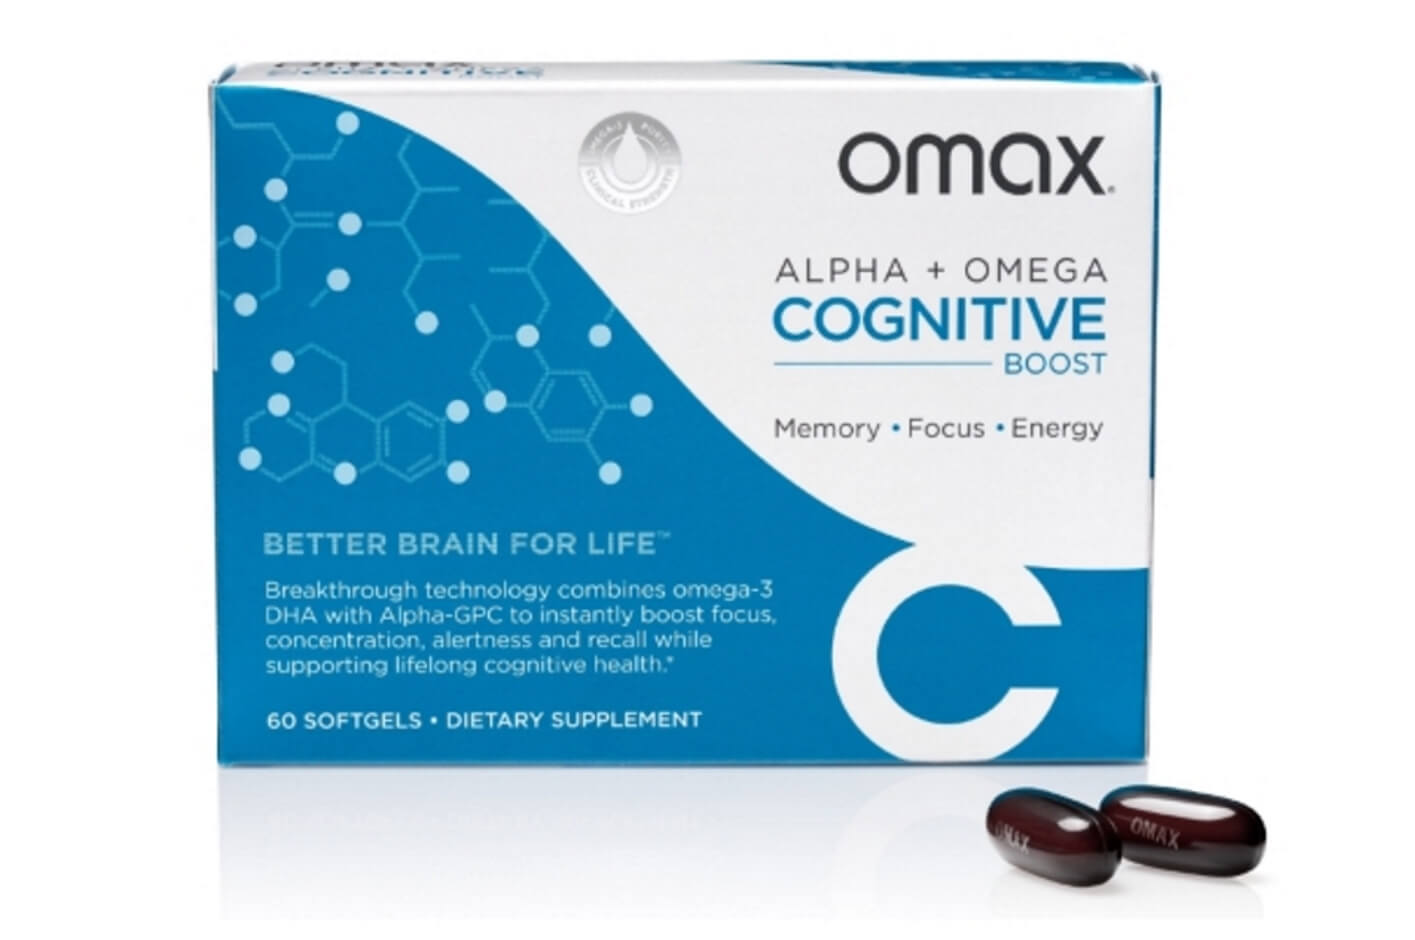 Omax Cognitive Boost - Dietary Supplement - 60 Softgels